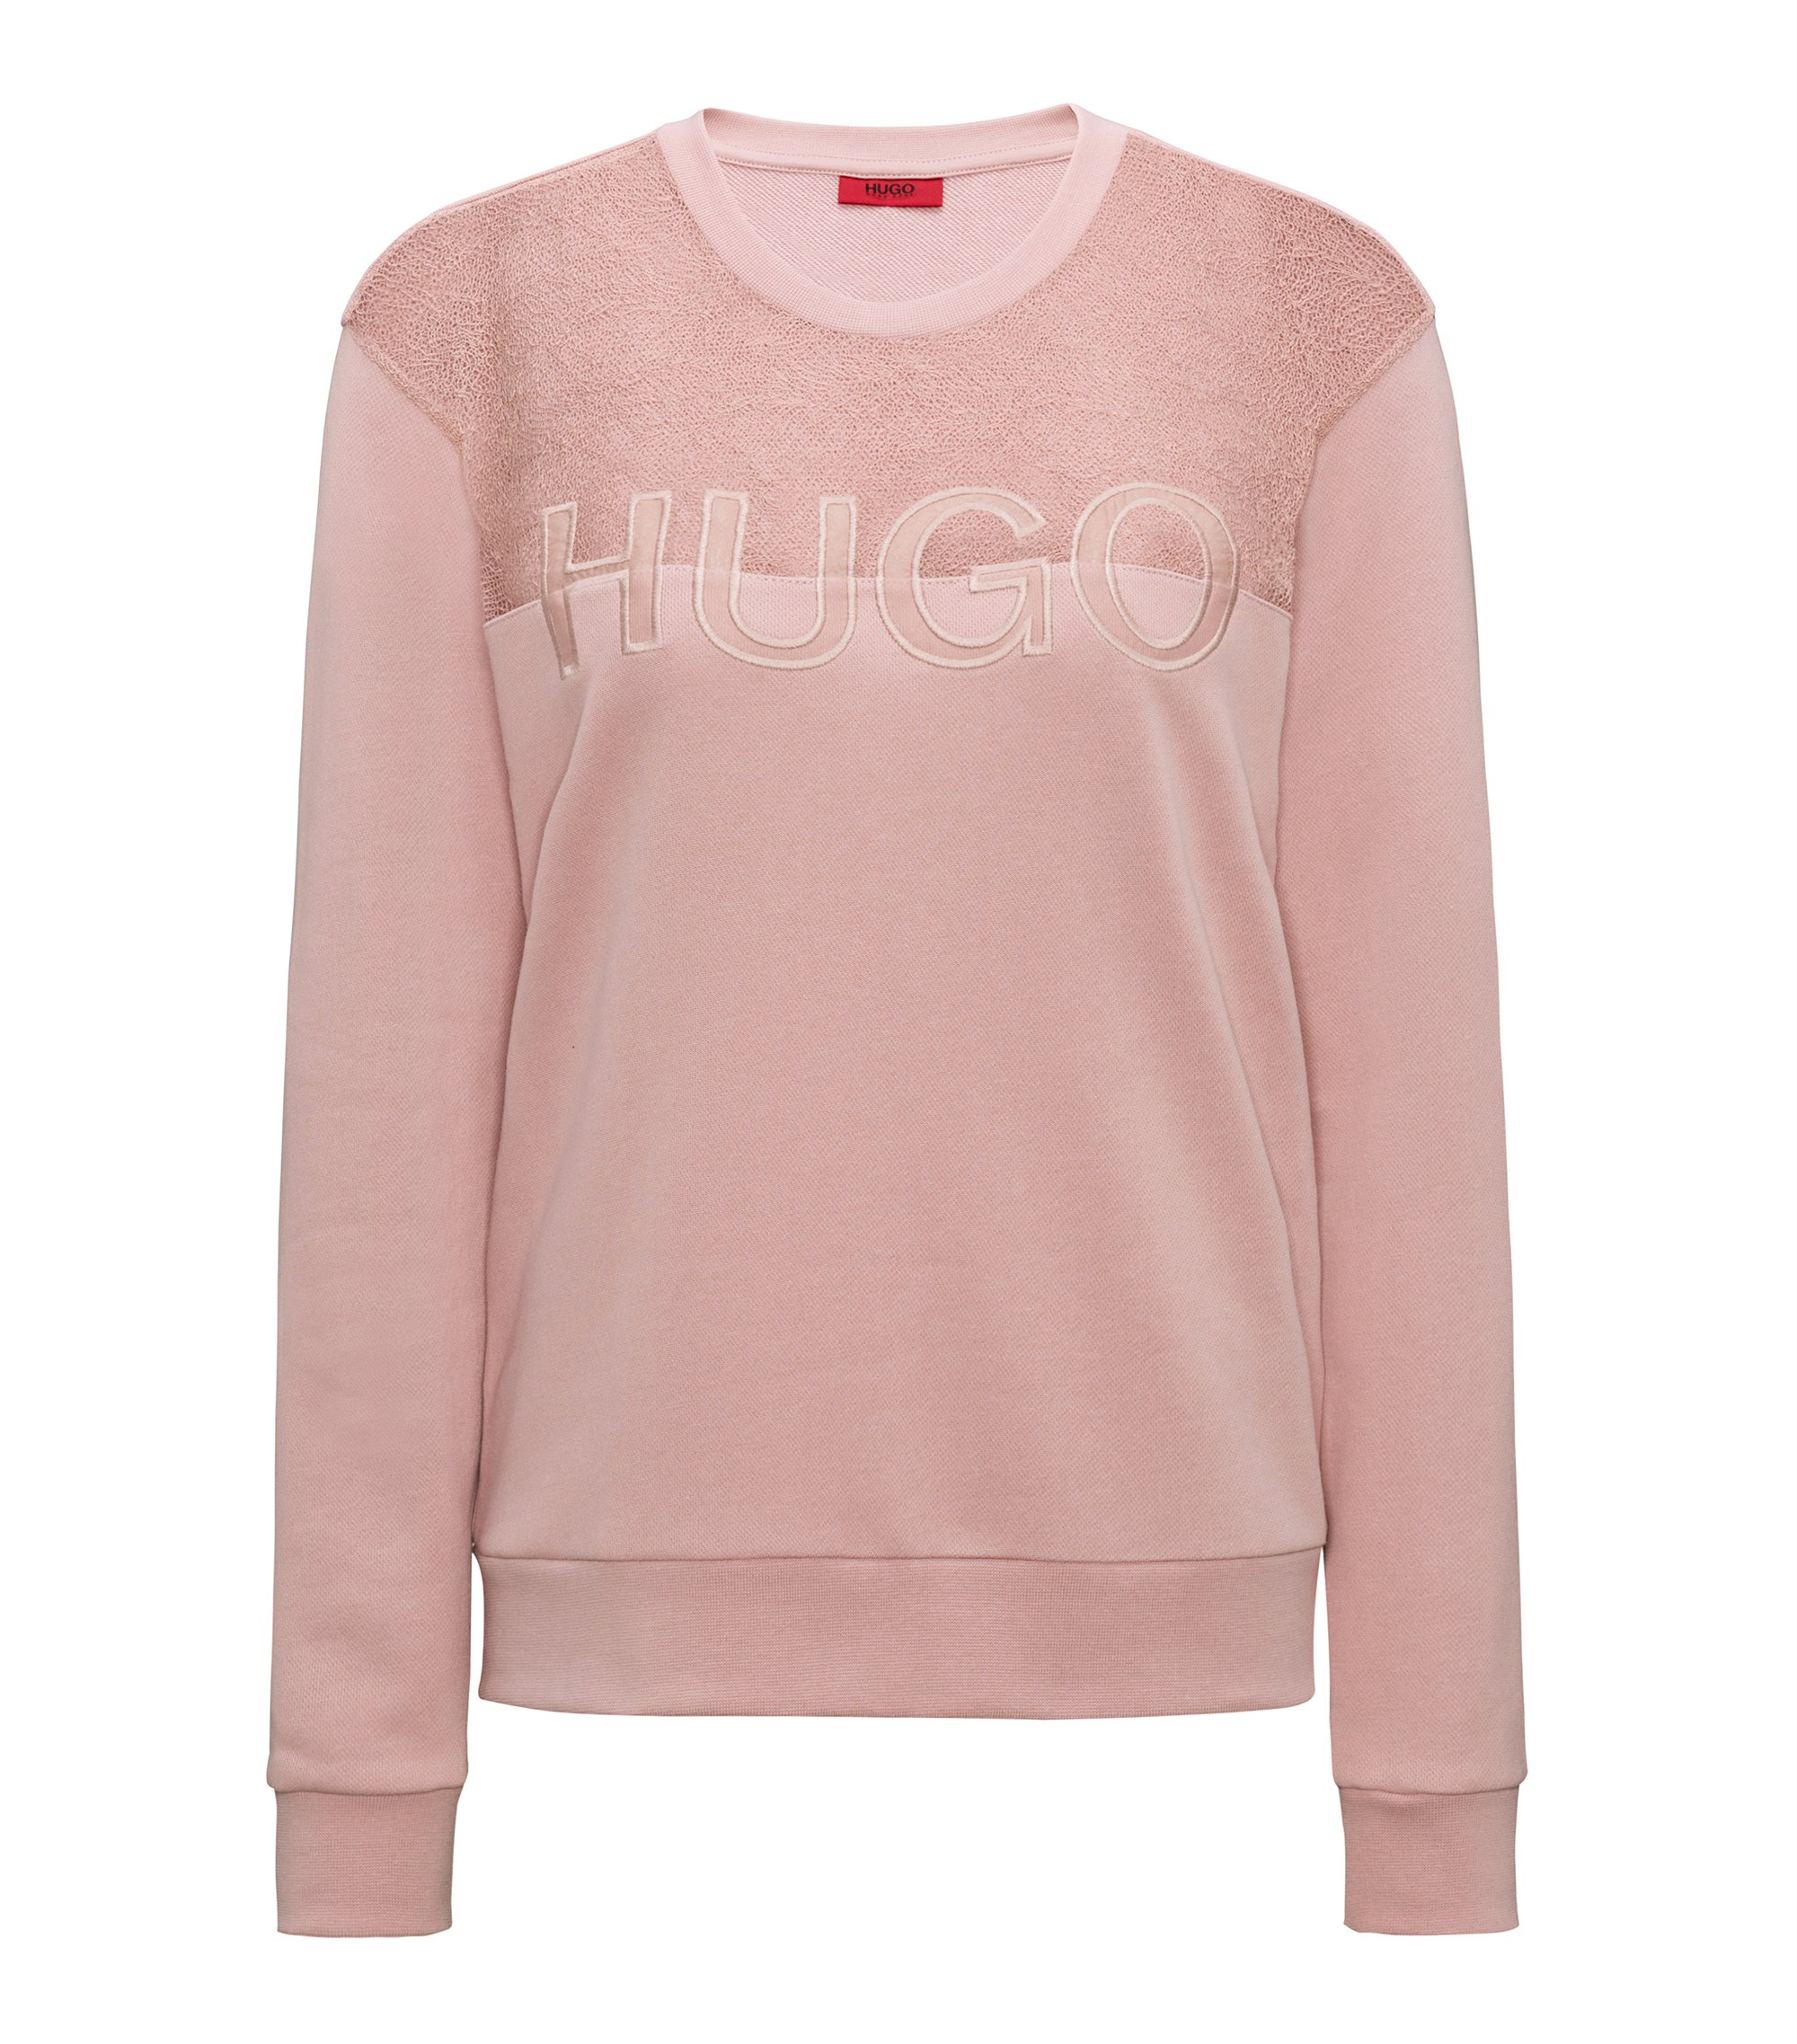 Cotton-blend logo sweater with lace yoke, light pink